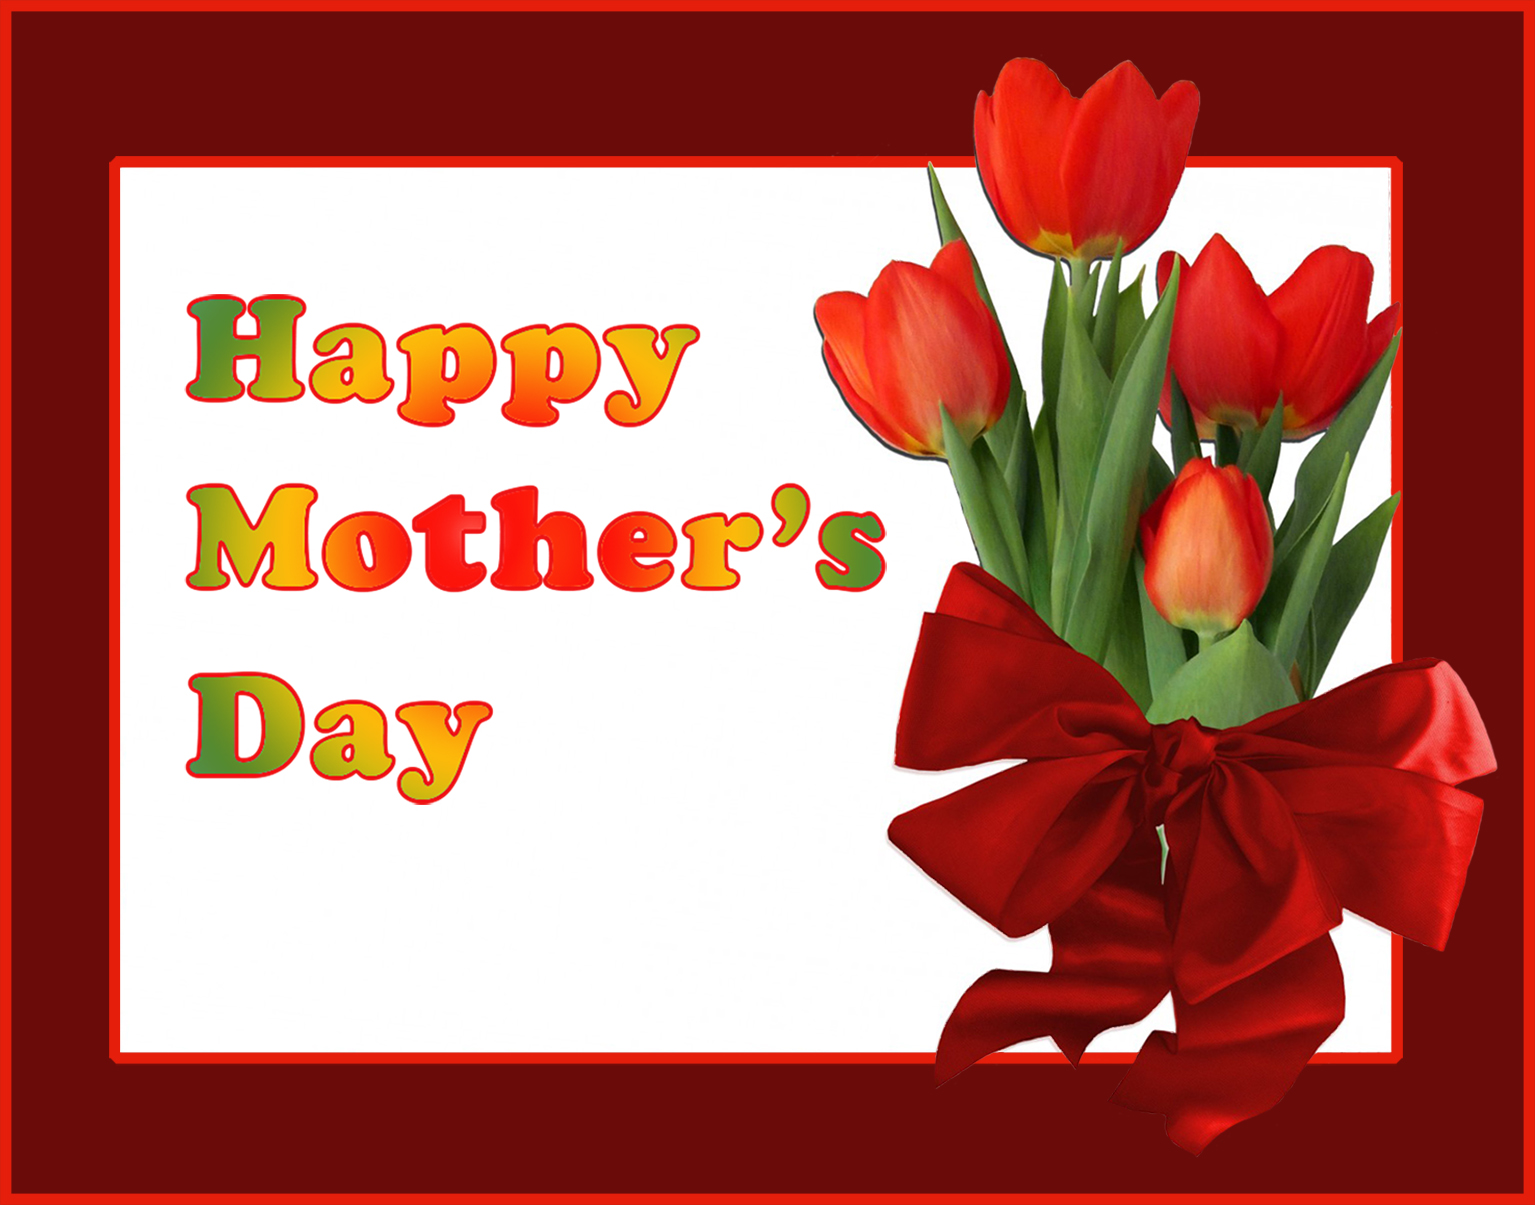 Mother's day greeting card with tulips